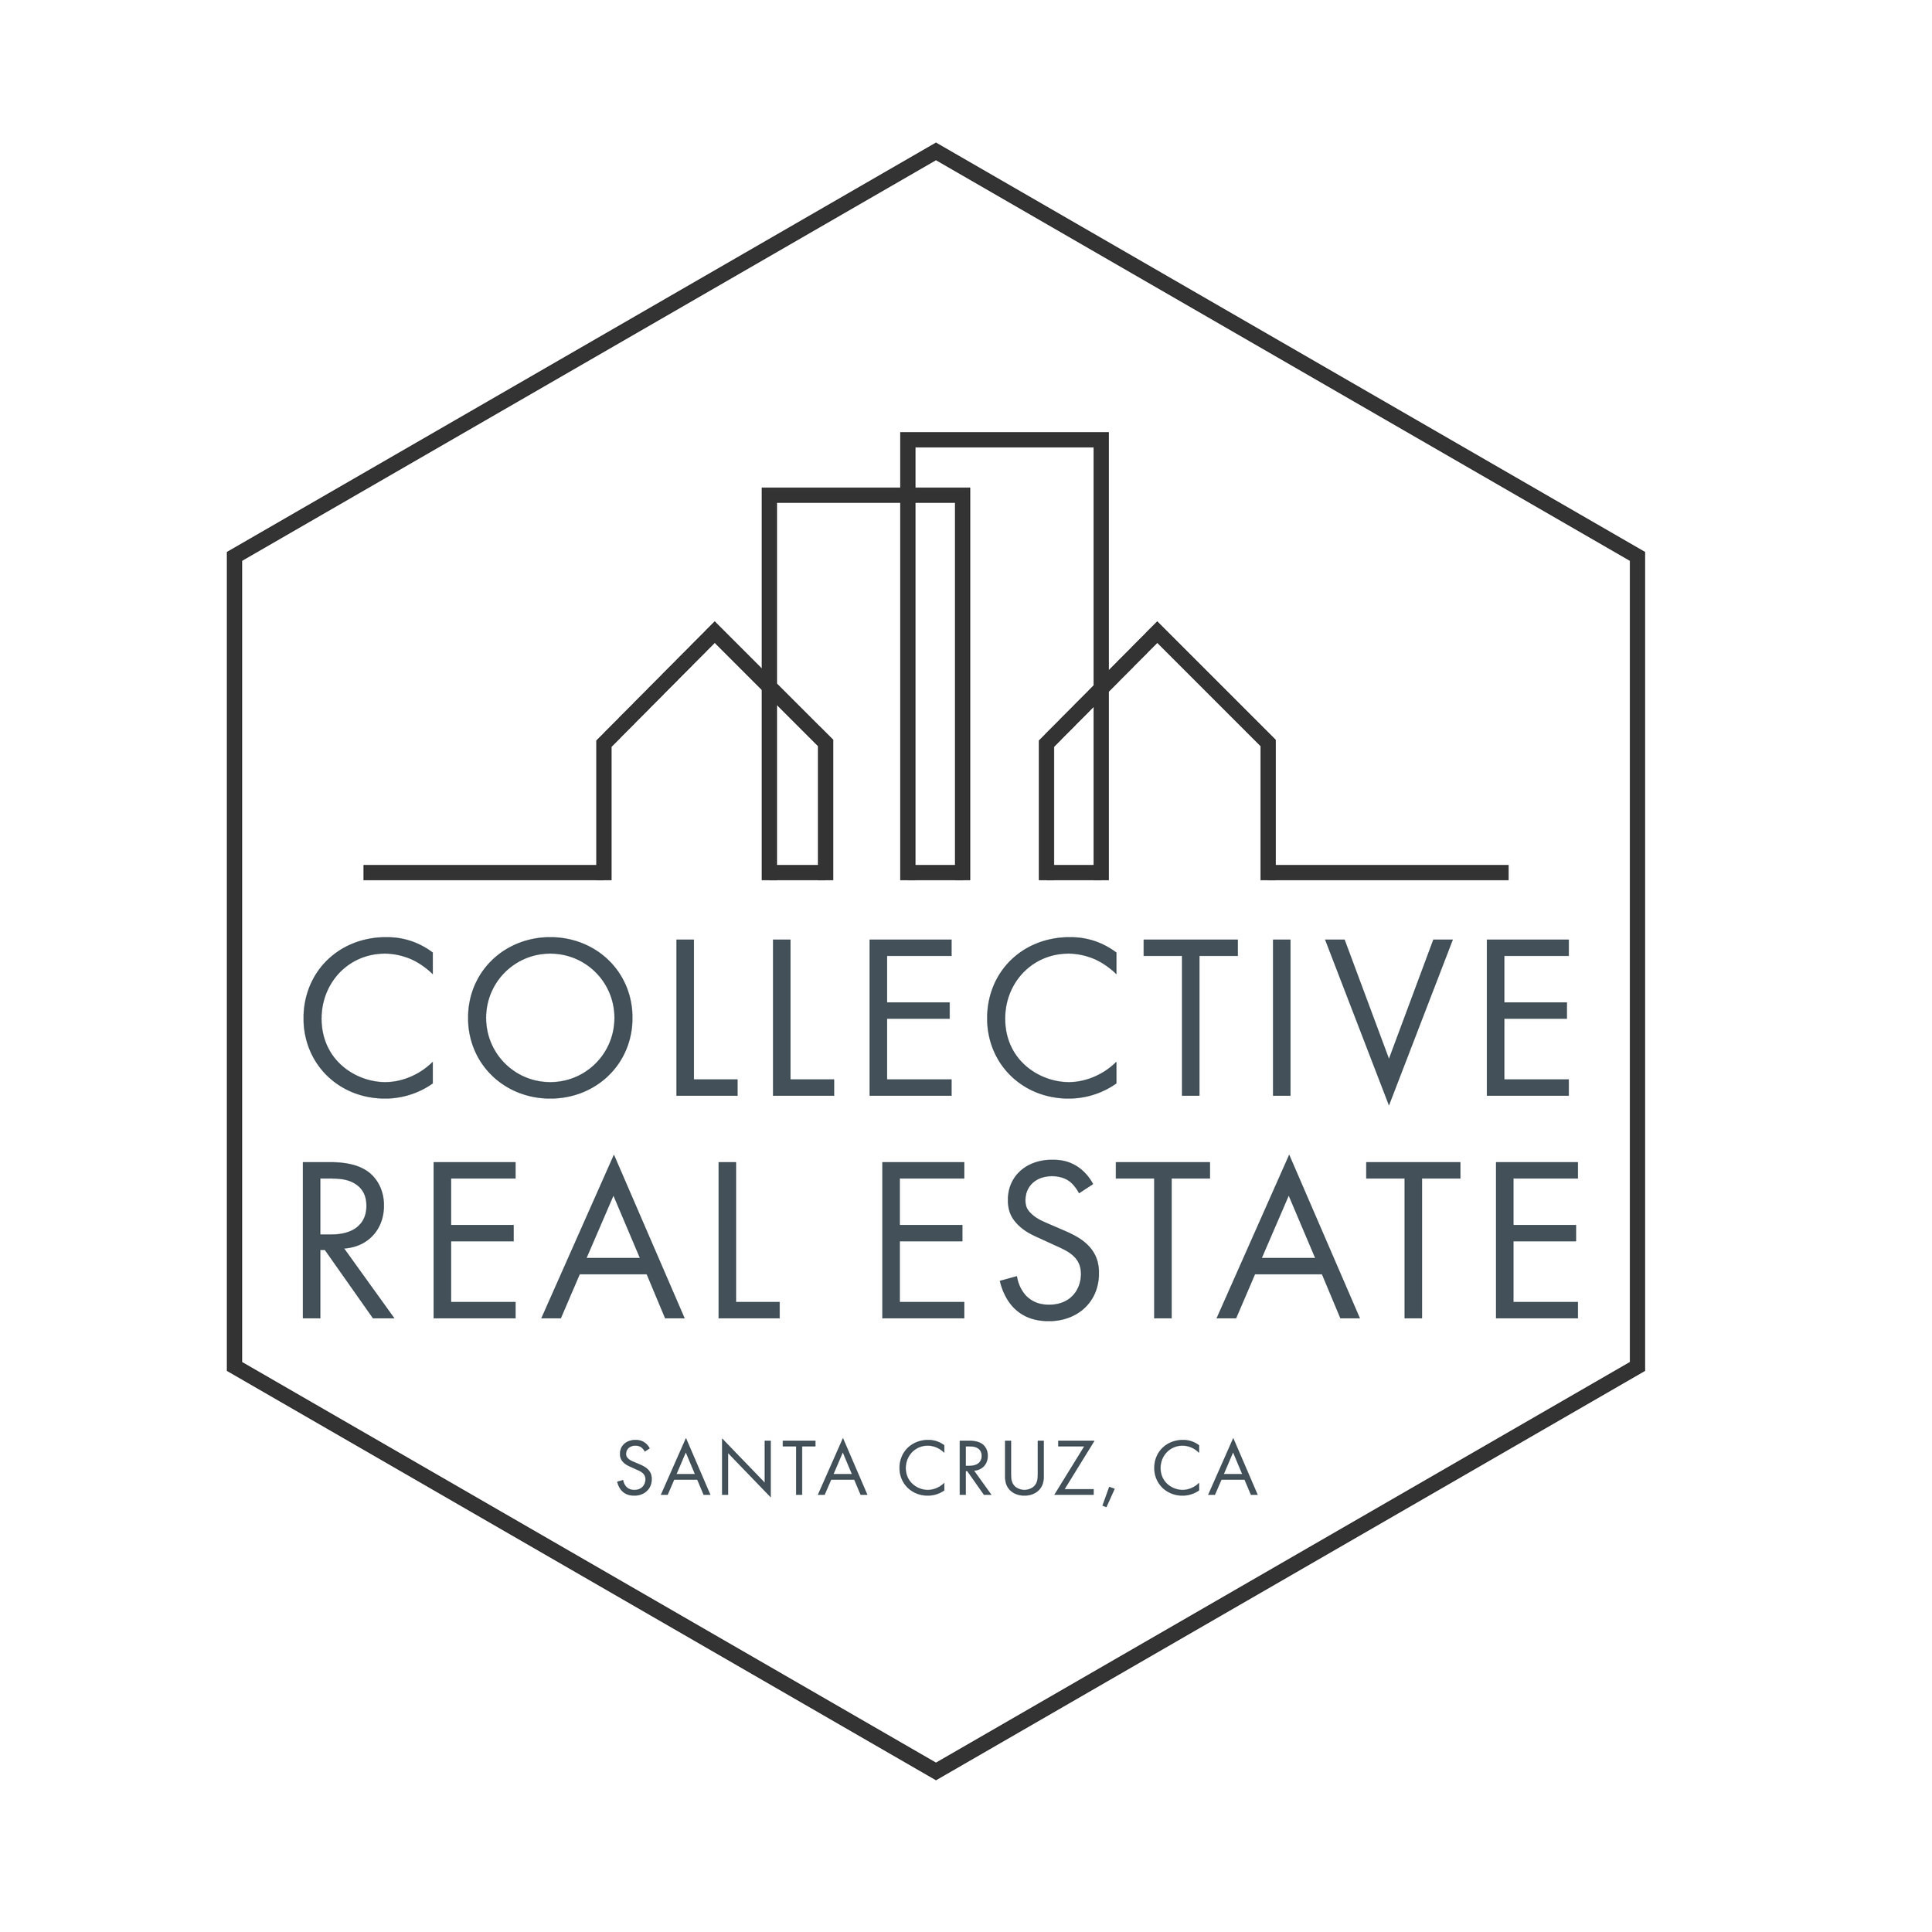 Collective Real Estate Hexagon Logo _ Santa Cruz CA.jpg